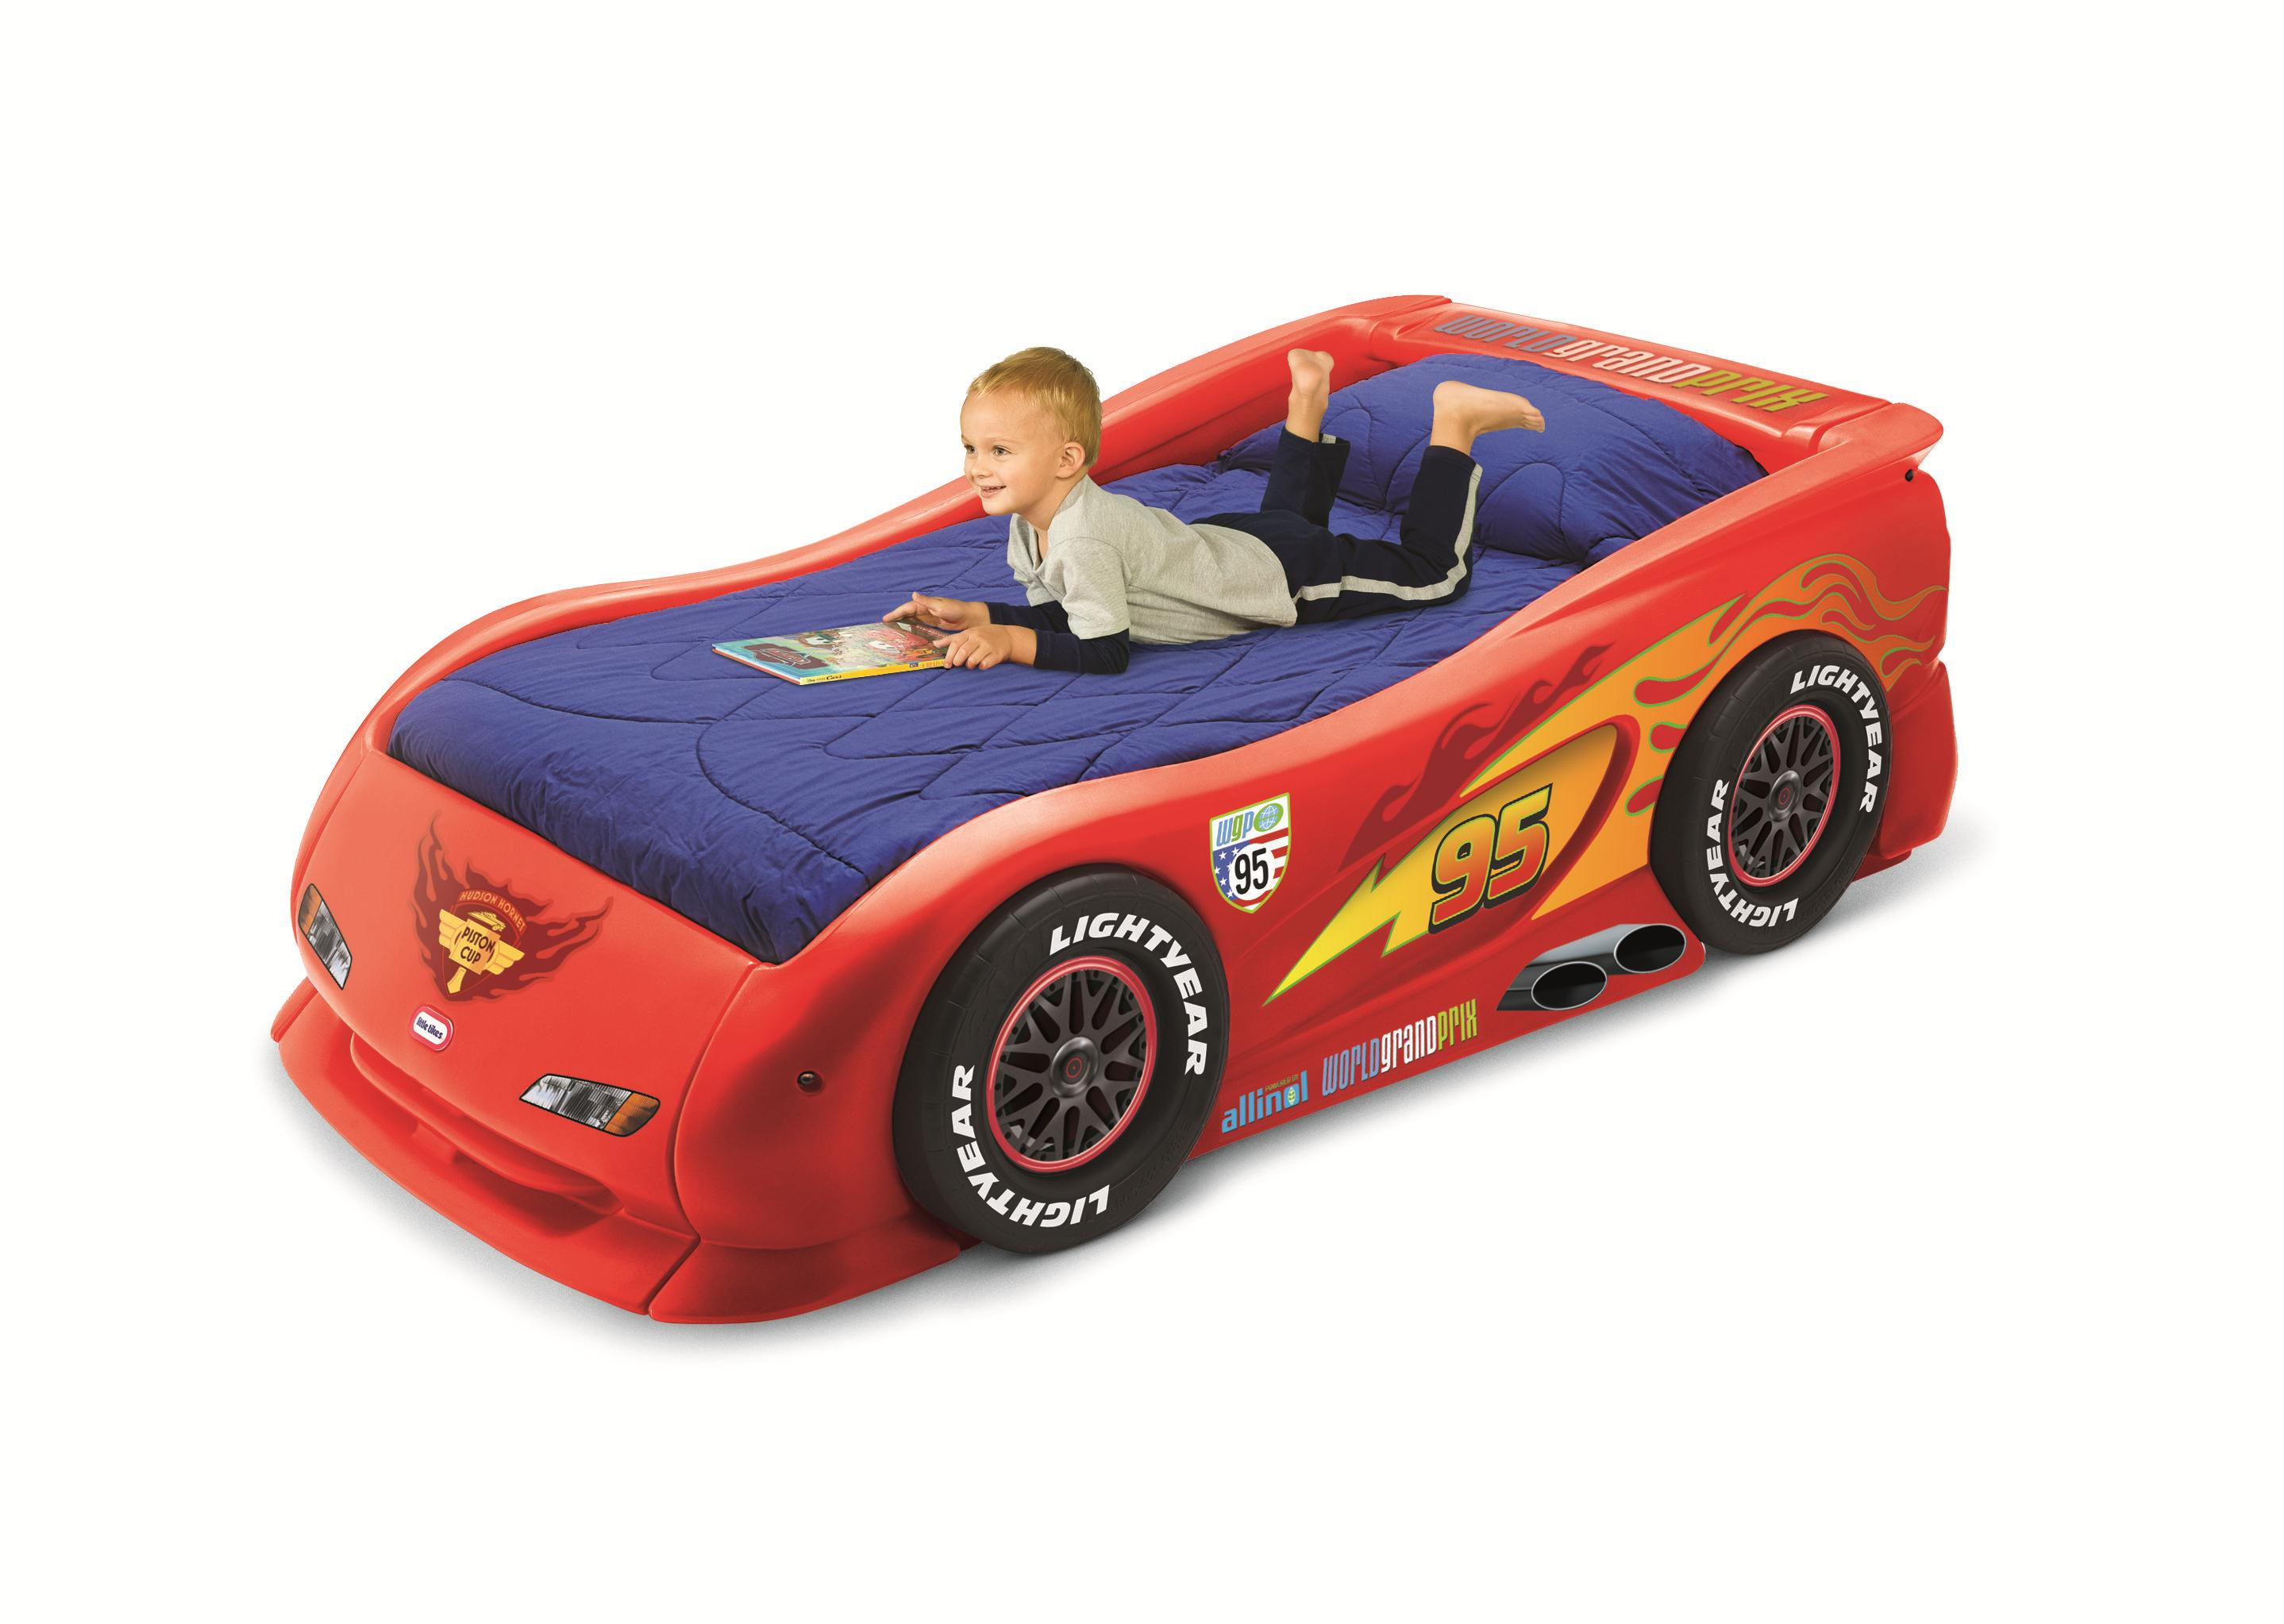 Best Toddlers Little Tikes Lightning Mcqueen Roadster Toddler Bed Race Car Bed Kids Toddler Car Bedroom Toddler Car Bed Nz baby Toddler Car Bed